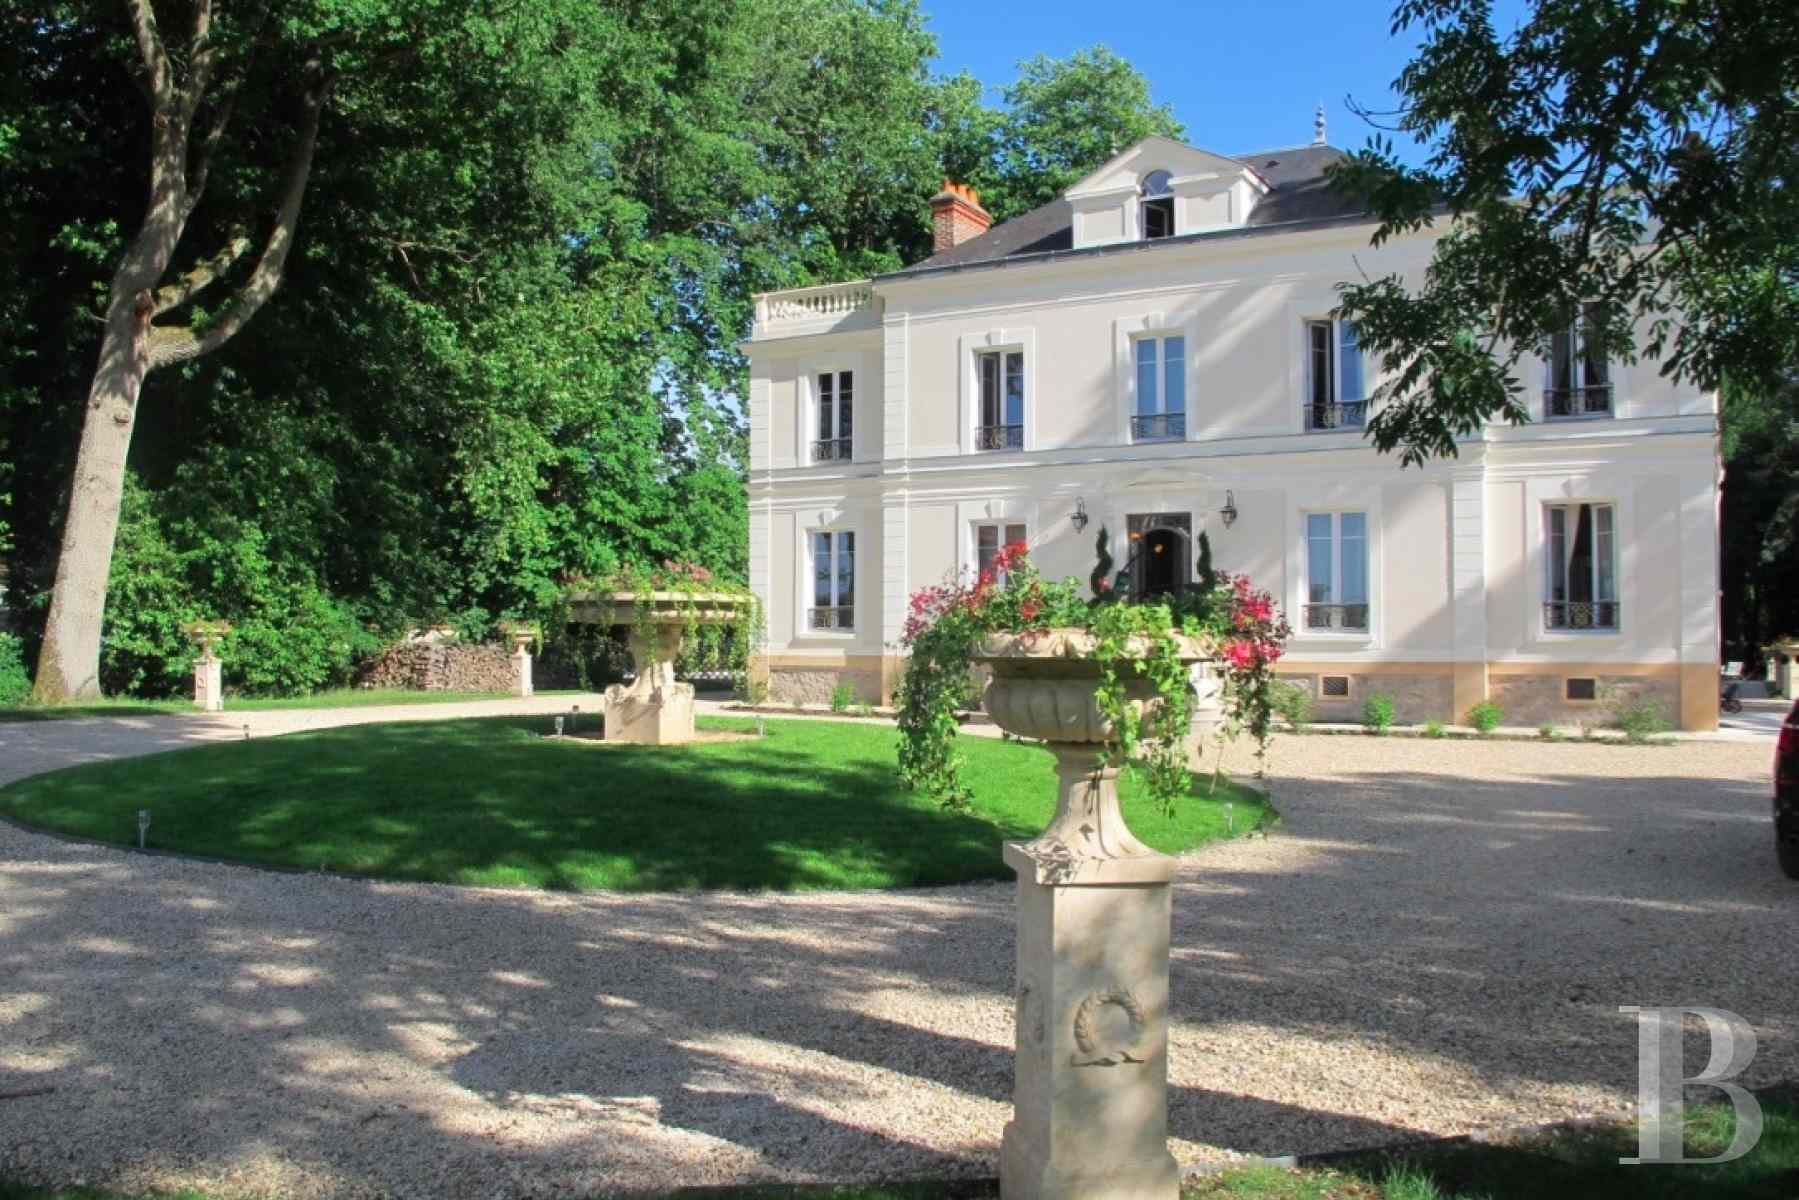 chateaux for sale France ile de france hunting lodge - 1 zoom